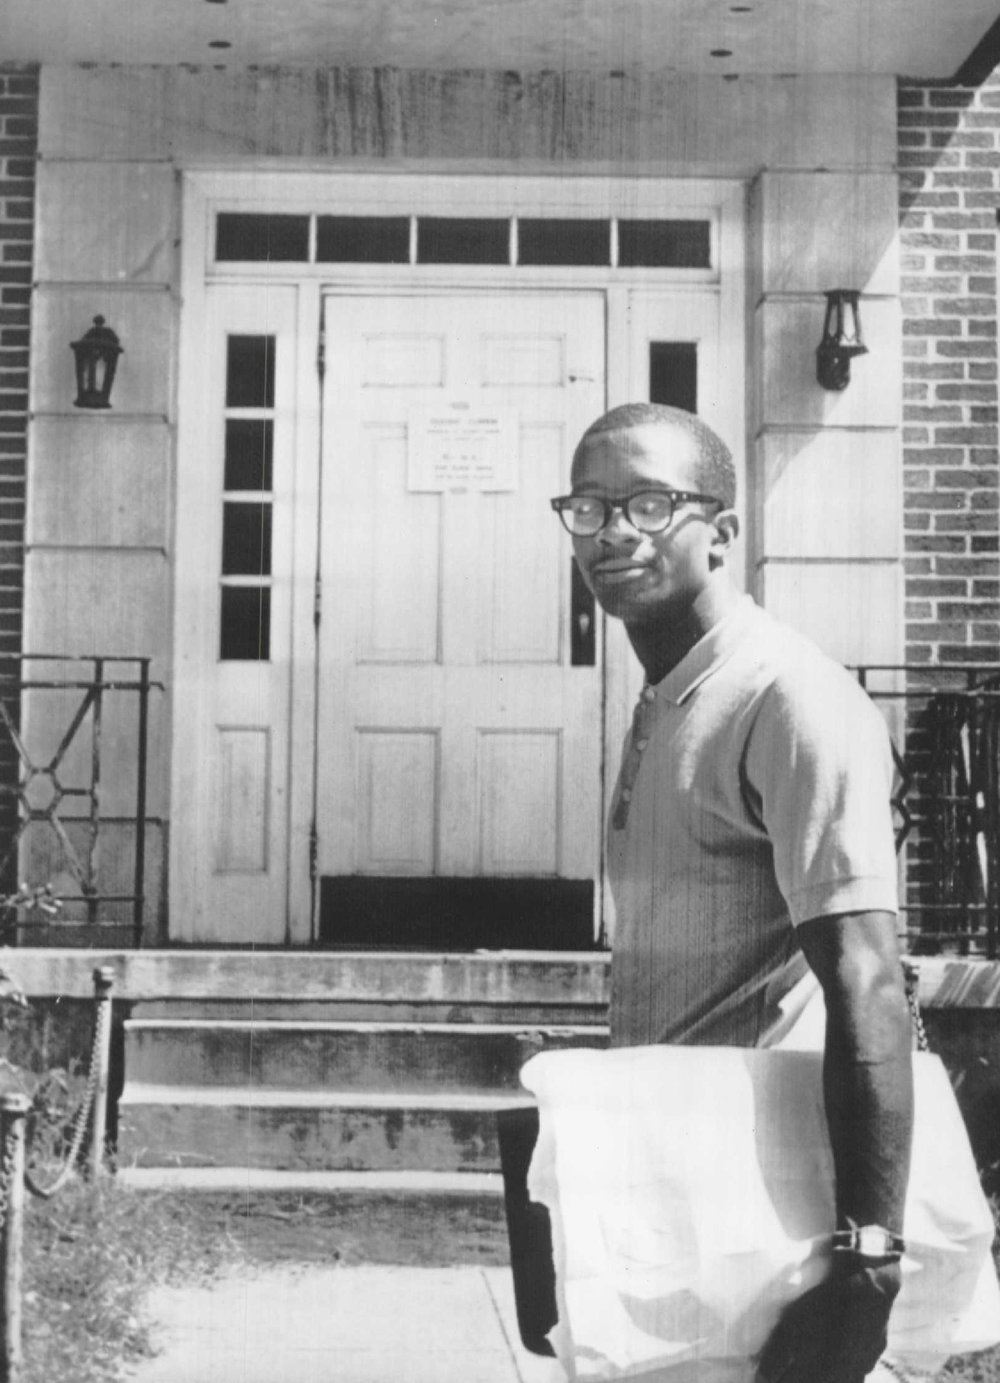 . James Hood poses at the doorway of Palmer Hall on the campus of the University of Alabama at Tuscaloosa as he returns to his residence hall after his first class today. He holds a bundle of books just purchased at the campus bookstore. A student curfew notice is tacked on the door. (The Denver Post Archive)